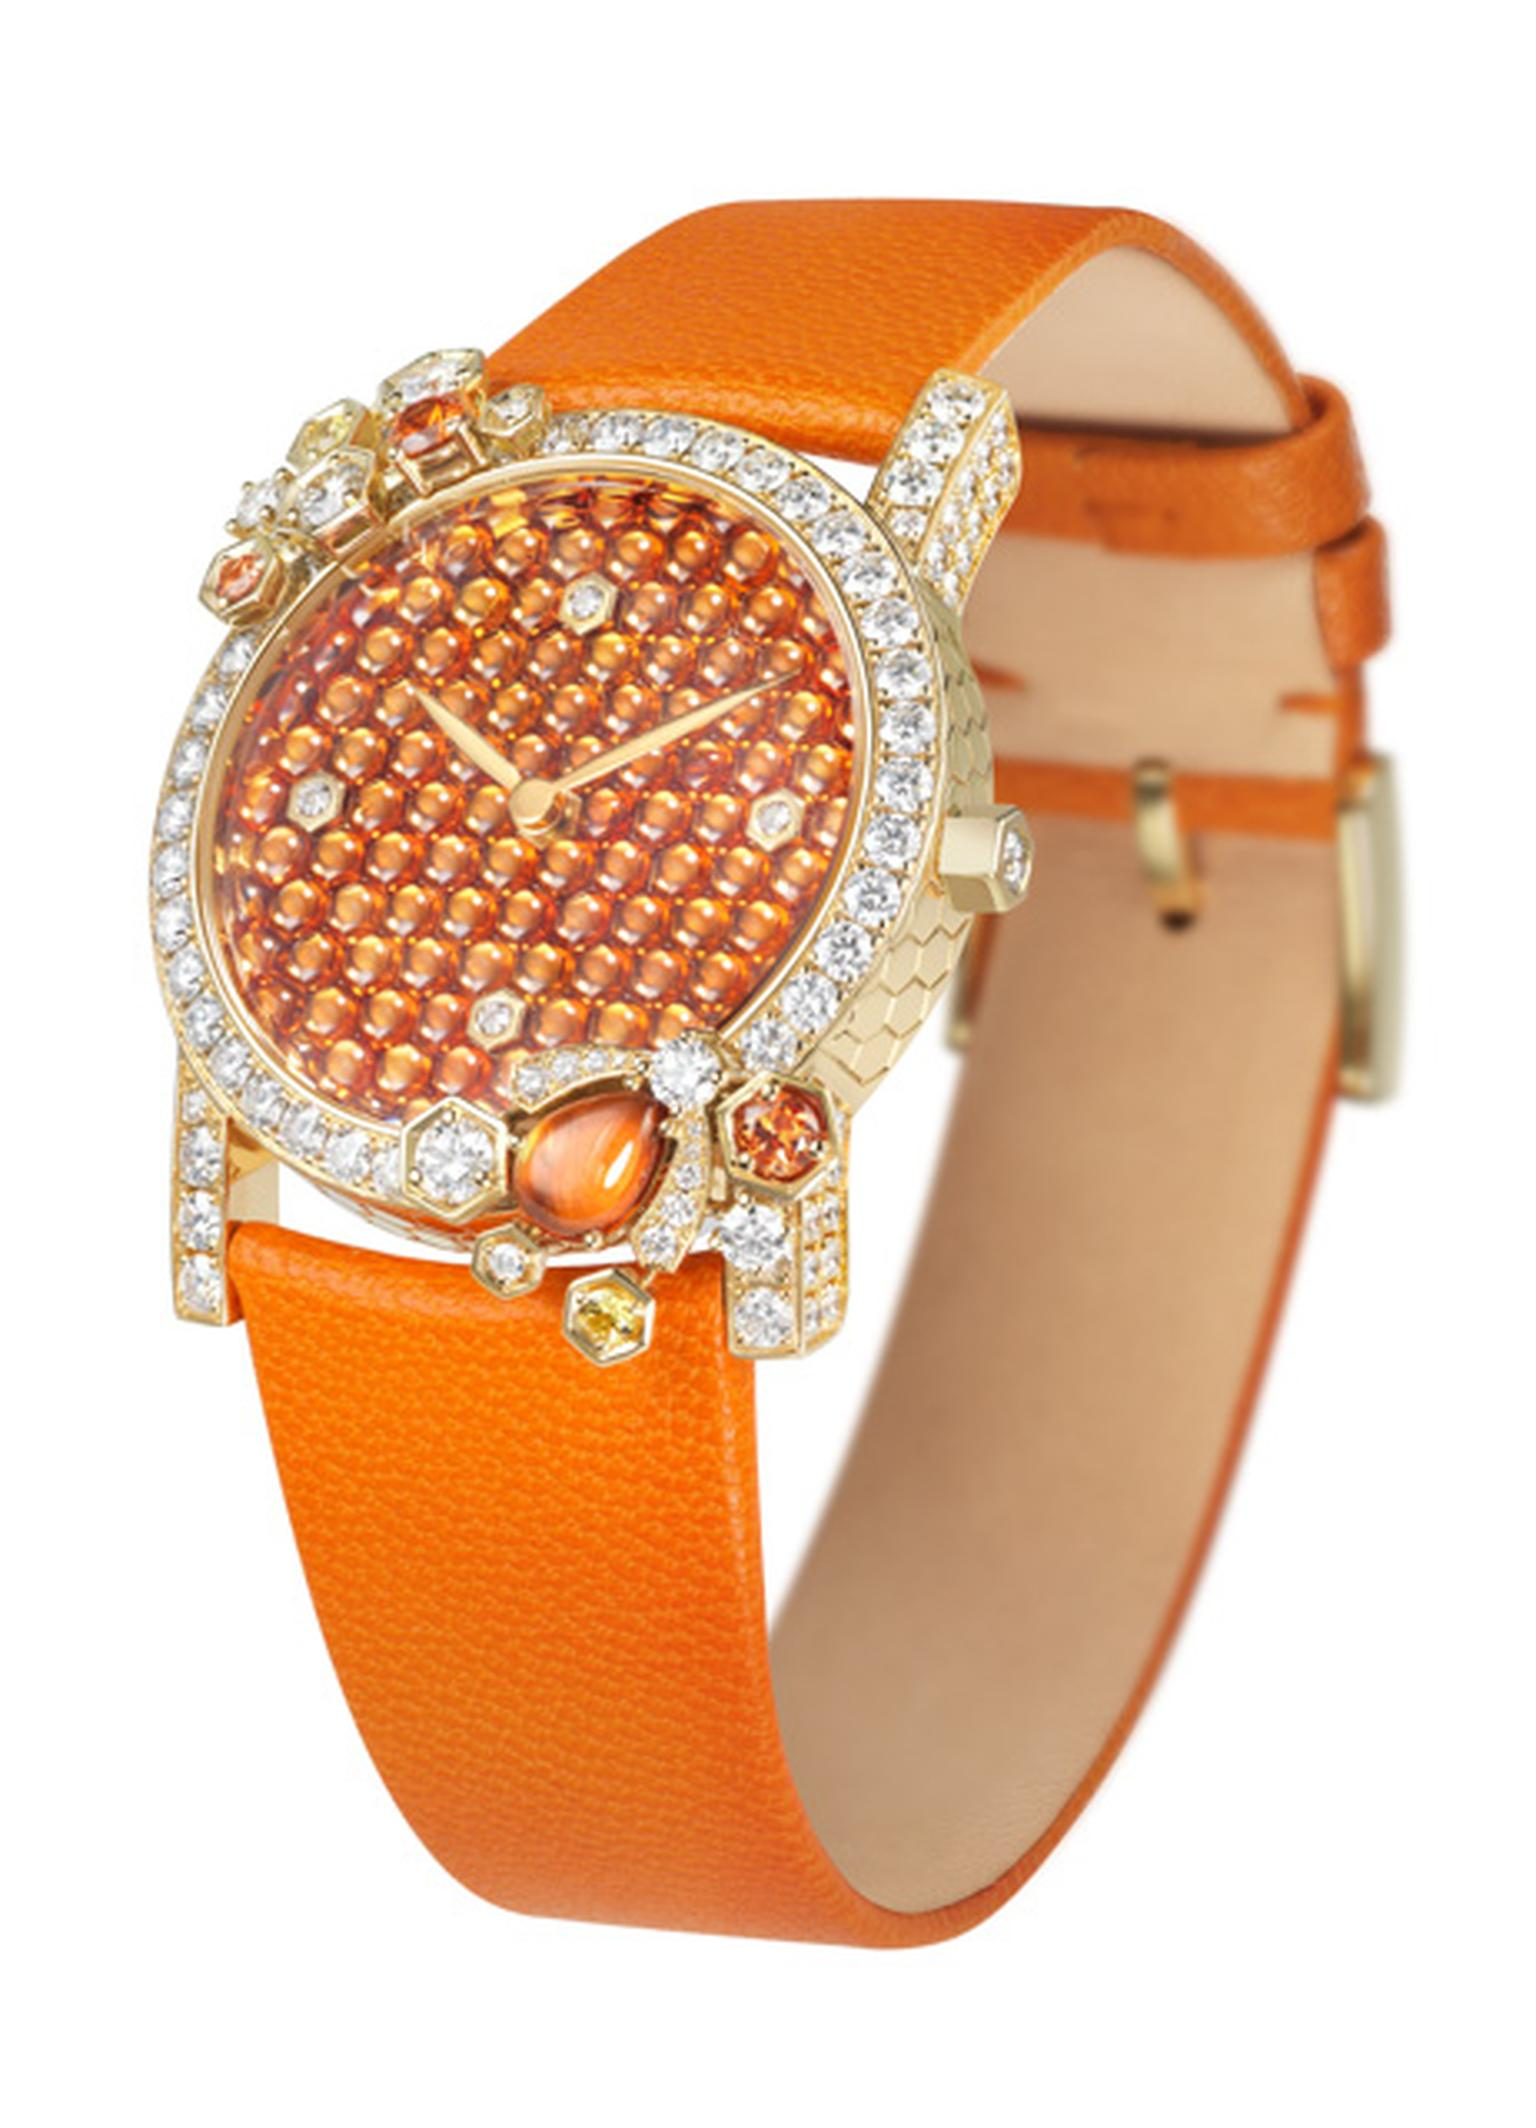 Chaumet Atrappe-Moi Cabochon watch orange